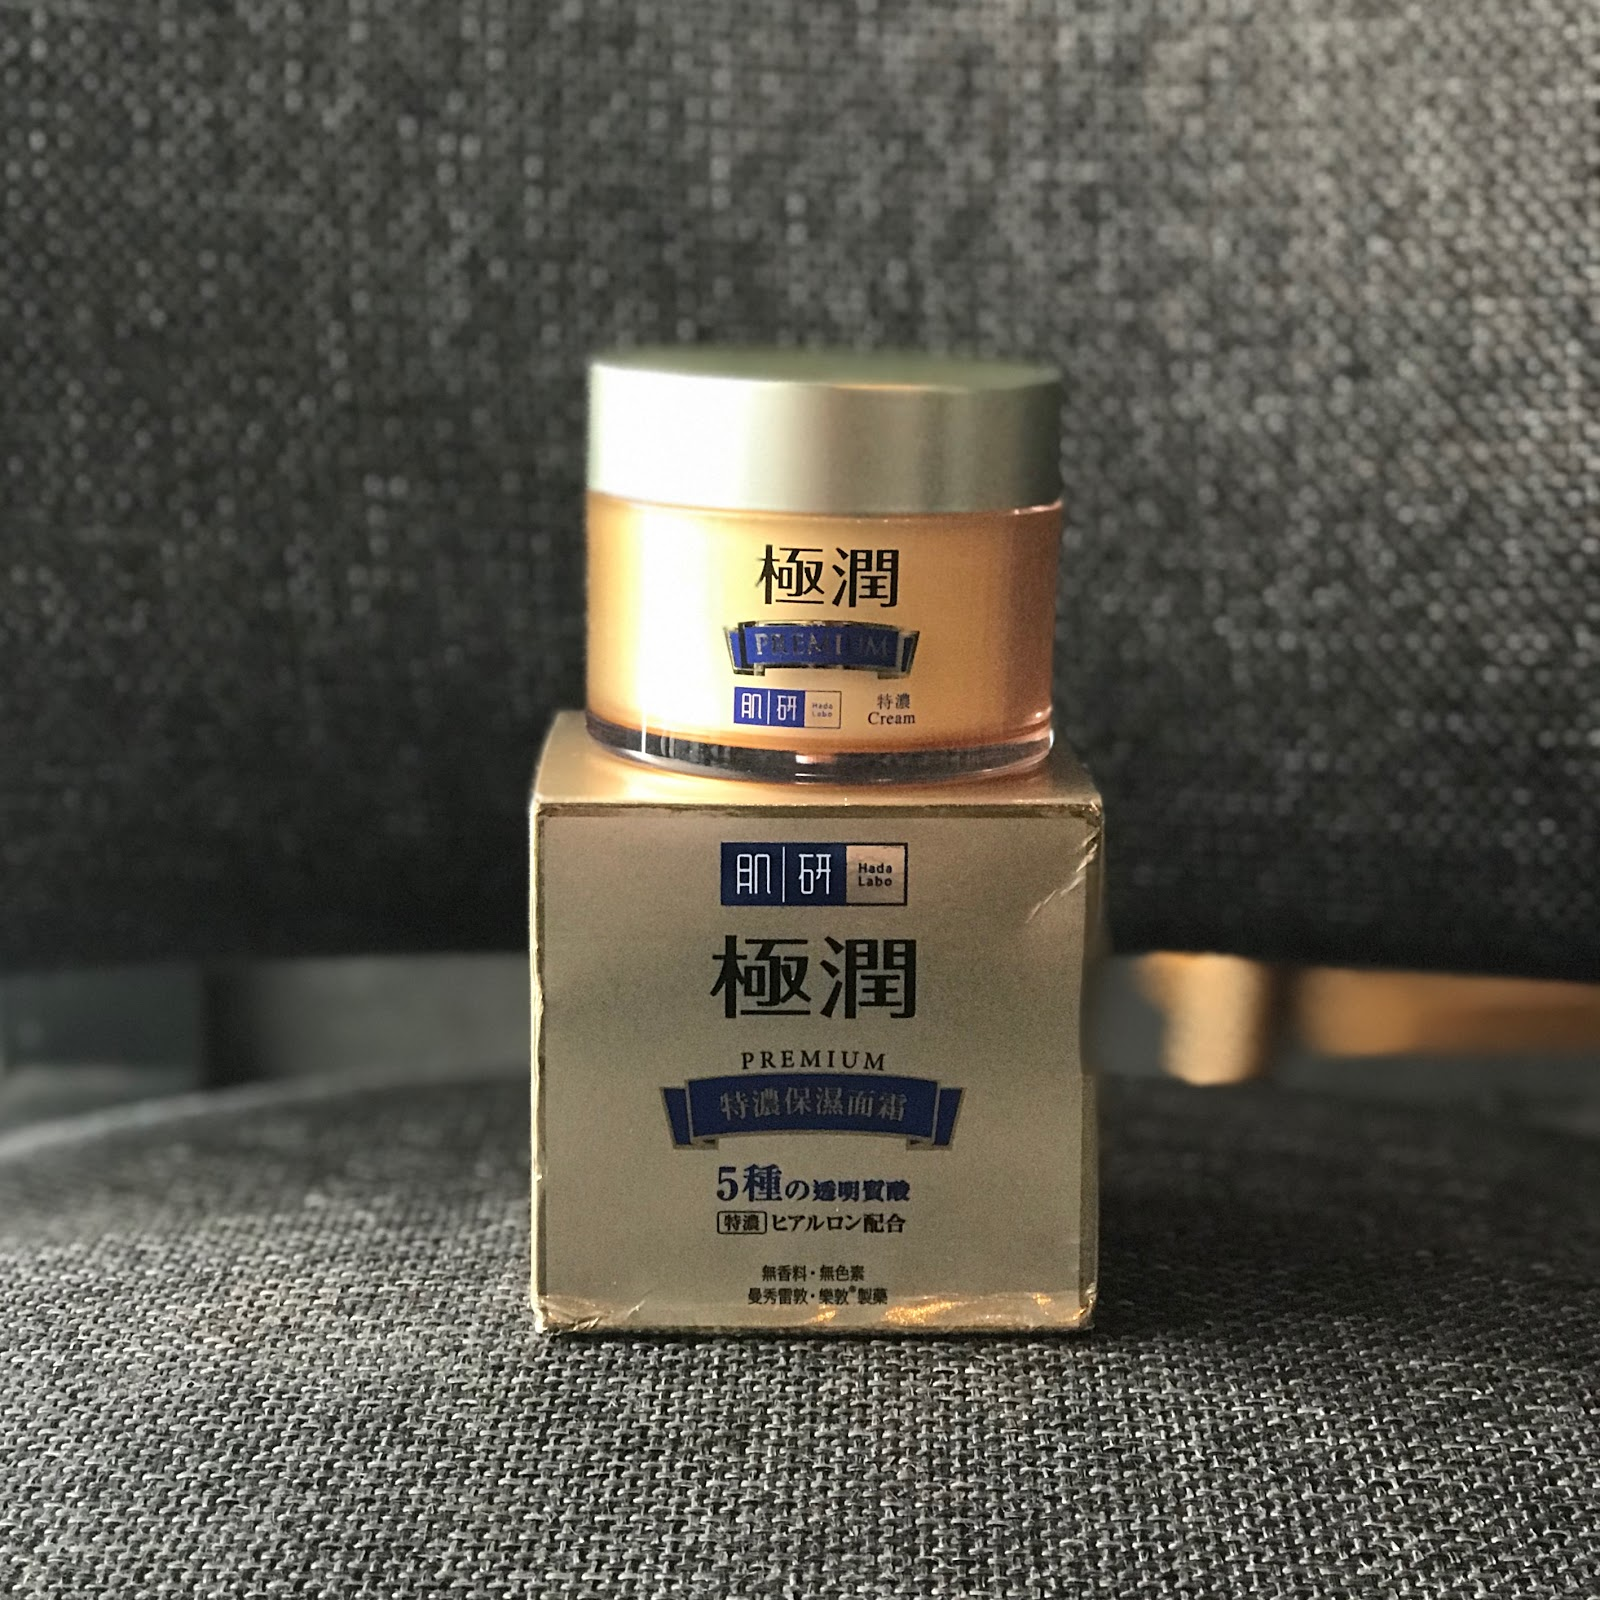 [Beauty Review] Experience Moisture Surge With Hada Labo Hydrating Premium Range